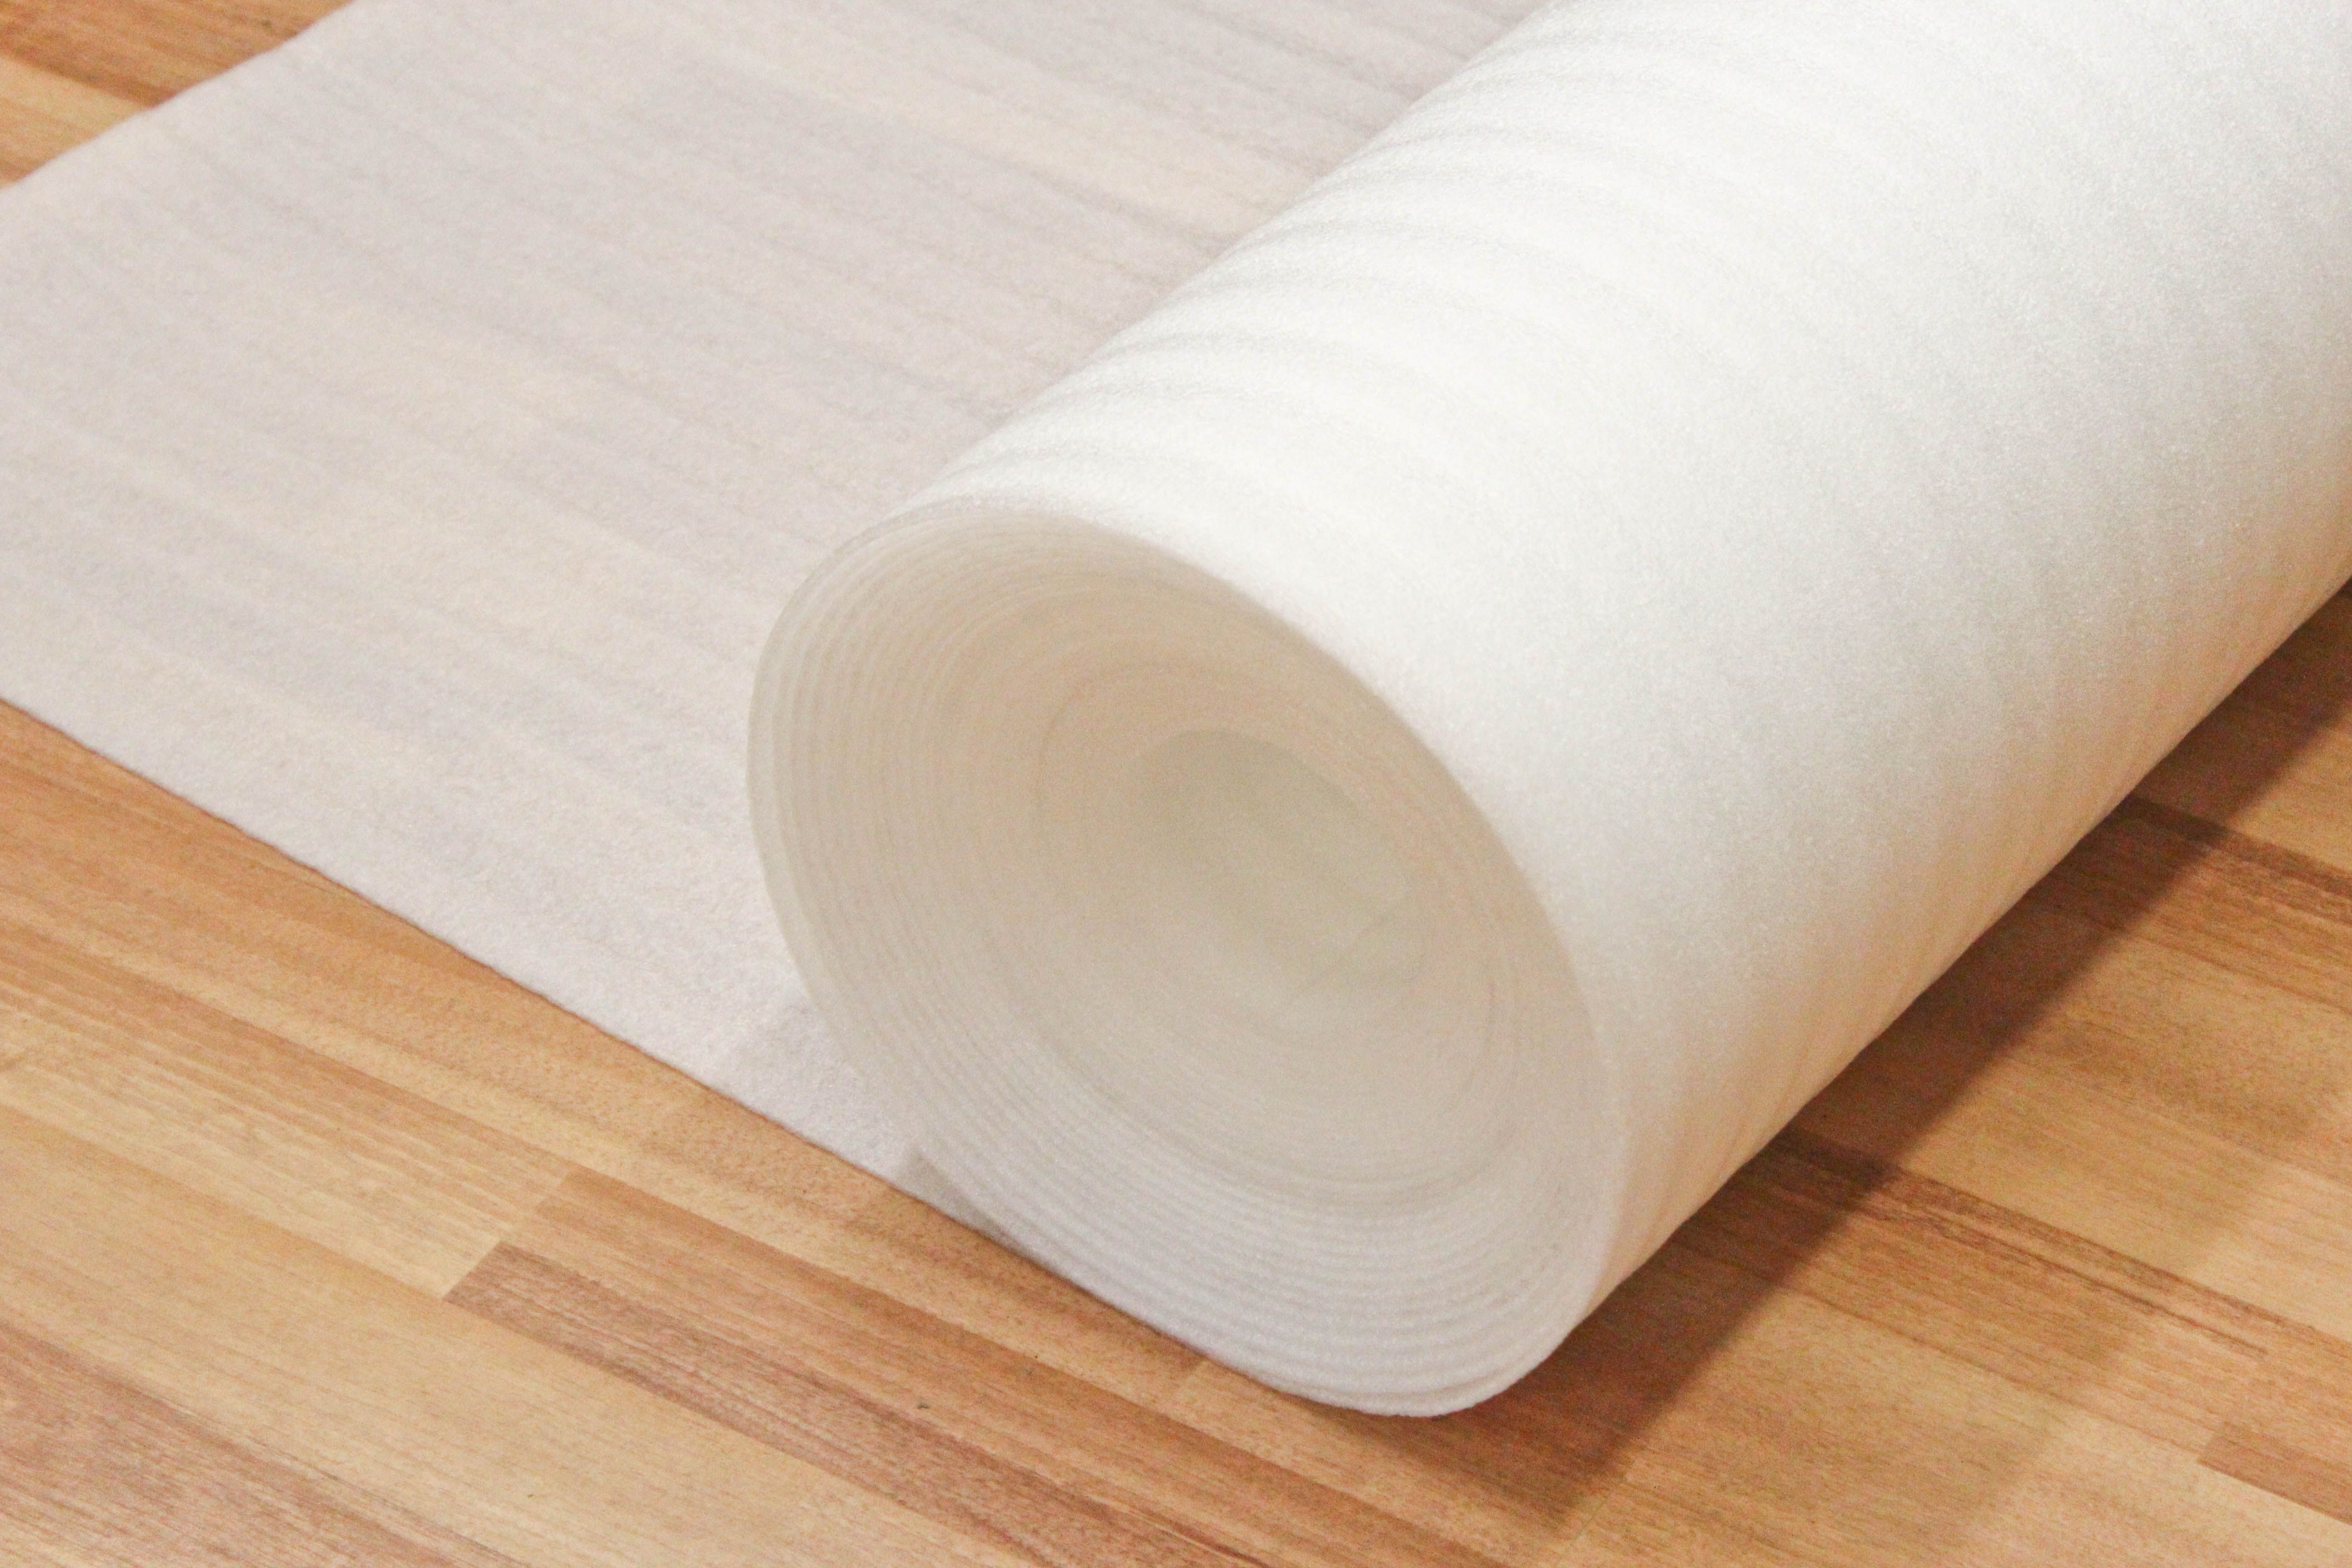 3 things you need to consider when choosing laminate underlay for your floor